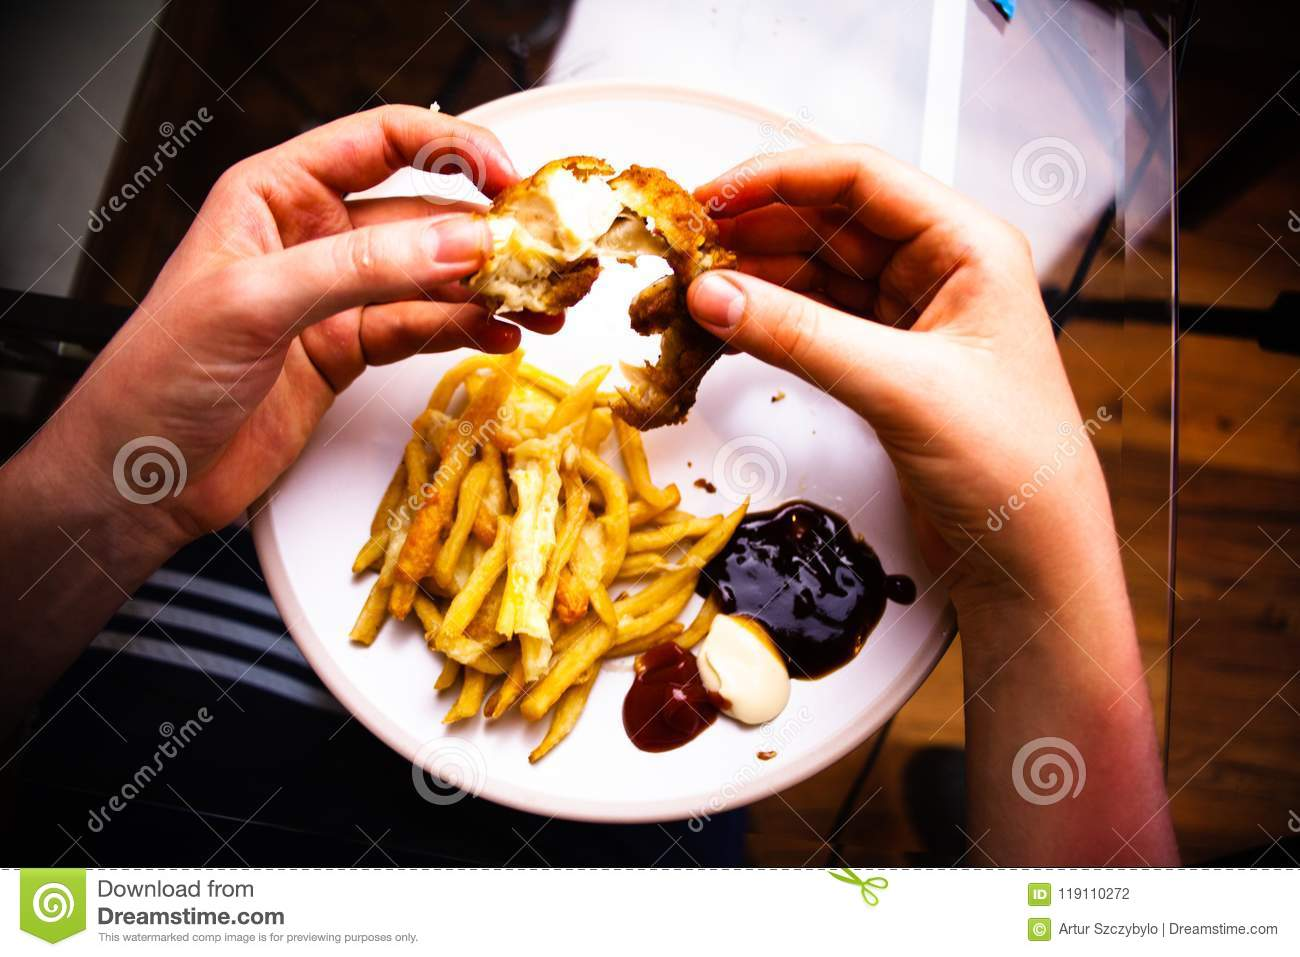 Unhealthy eating fast food concept. Man is holding chicken fried wings in his hands. Eating meal with hands. Delicious food prepar